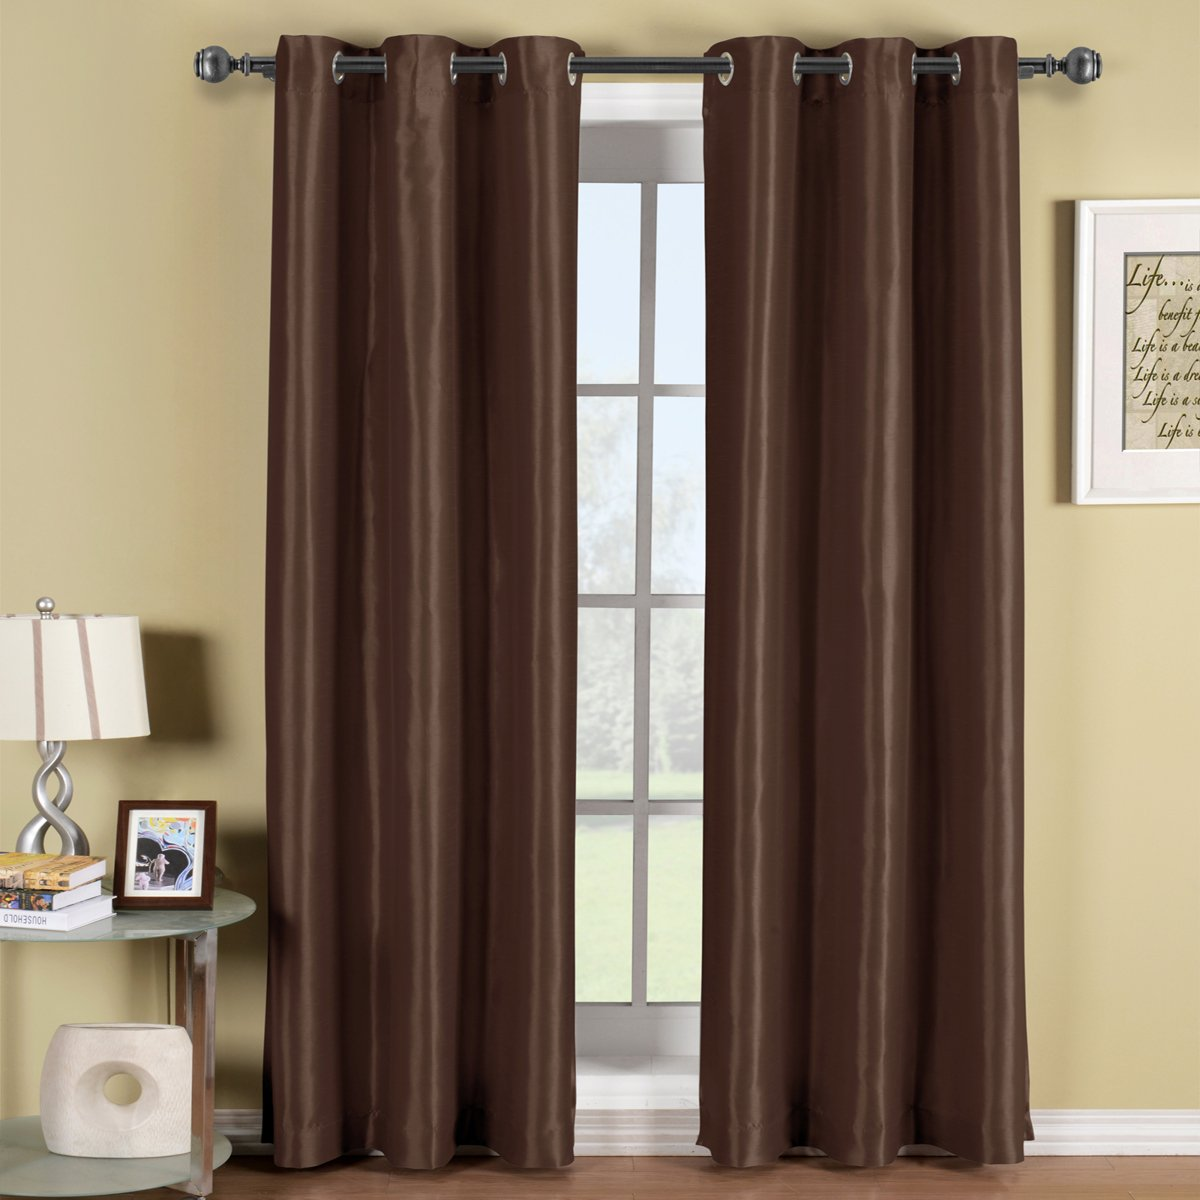 Soho Chocolate-Brown Grommet Blackout Window Curtain Drape, Solid Pattern, 42x84 inches, by Royal Hotel